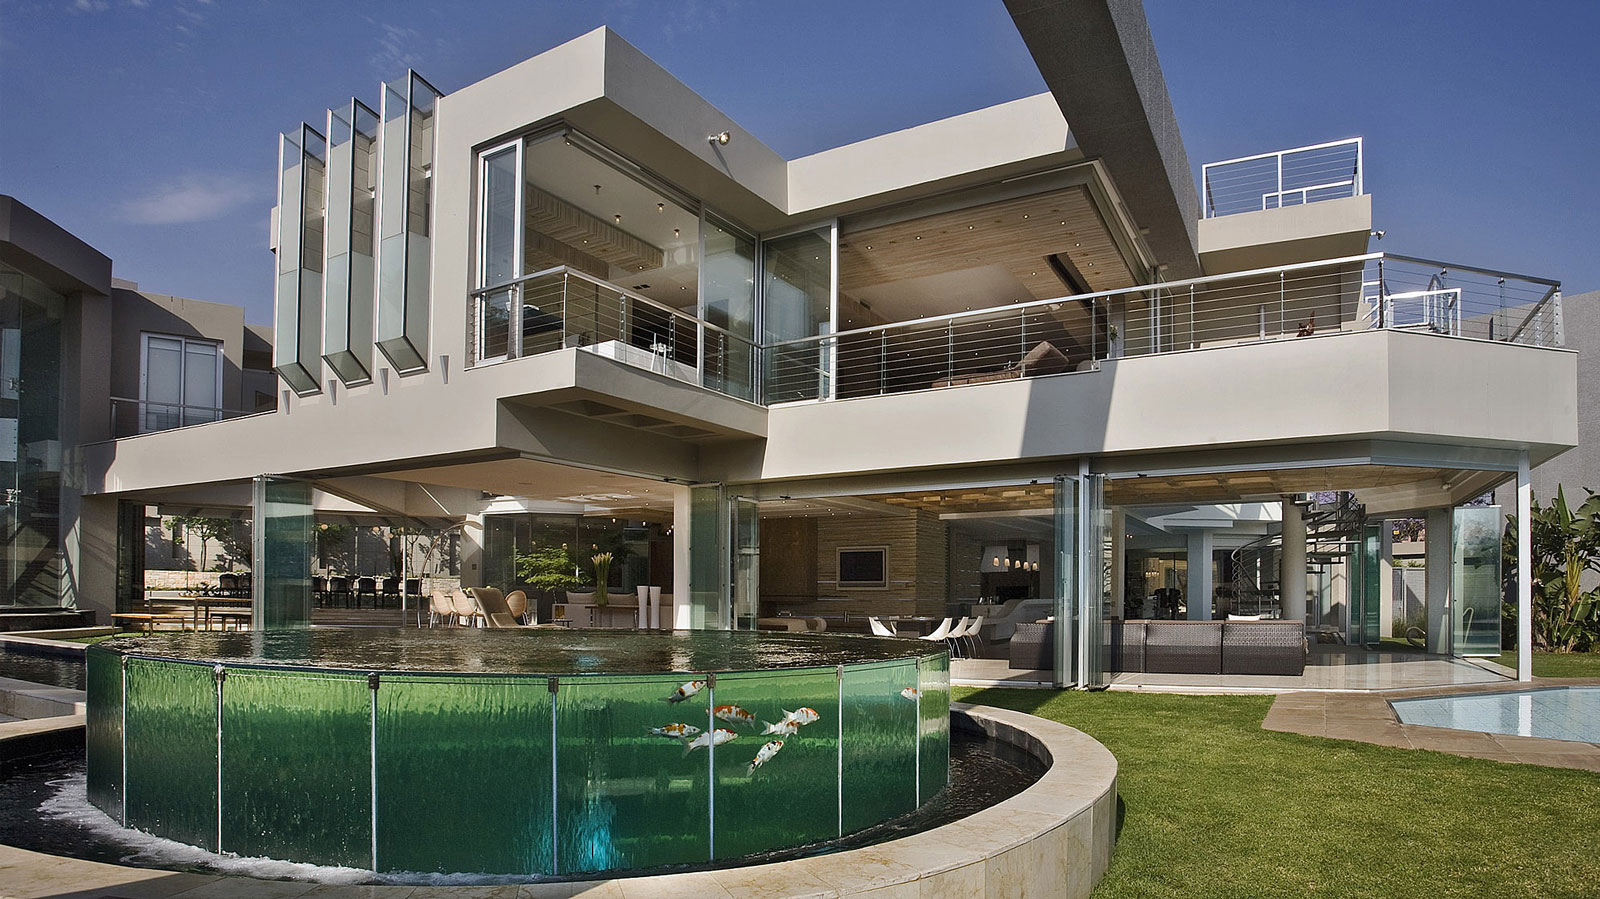 Outofadream glass house by nico van der meulen architects